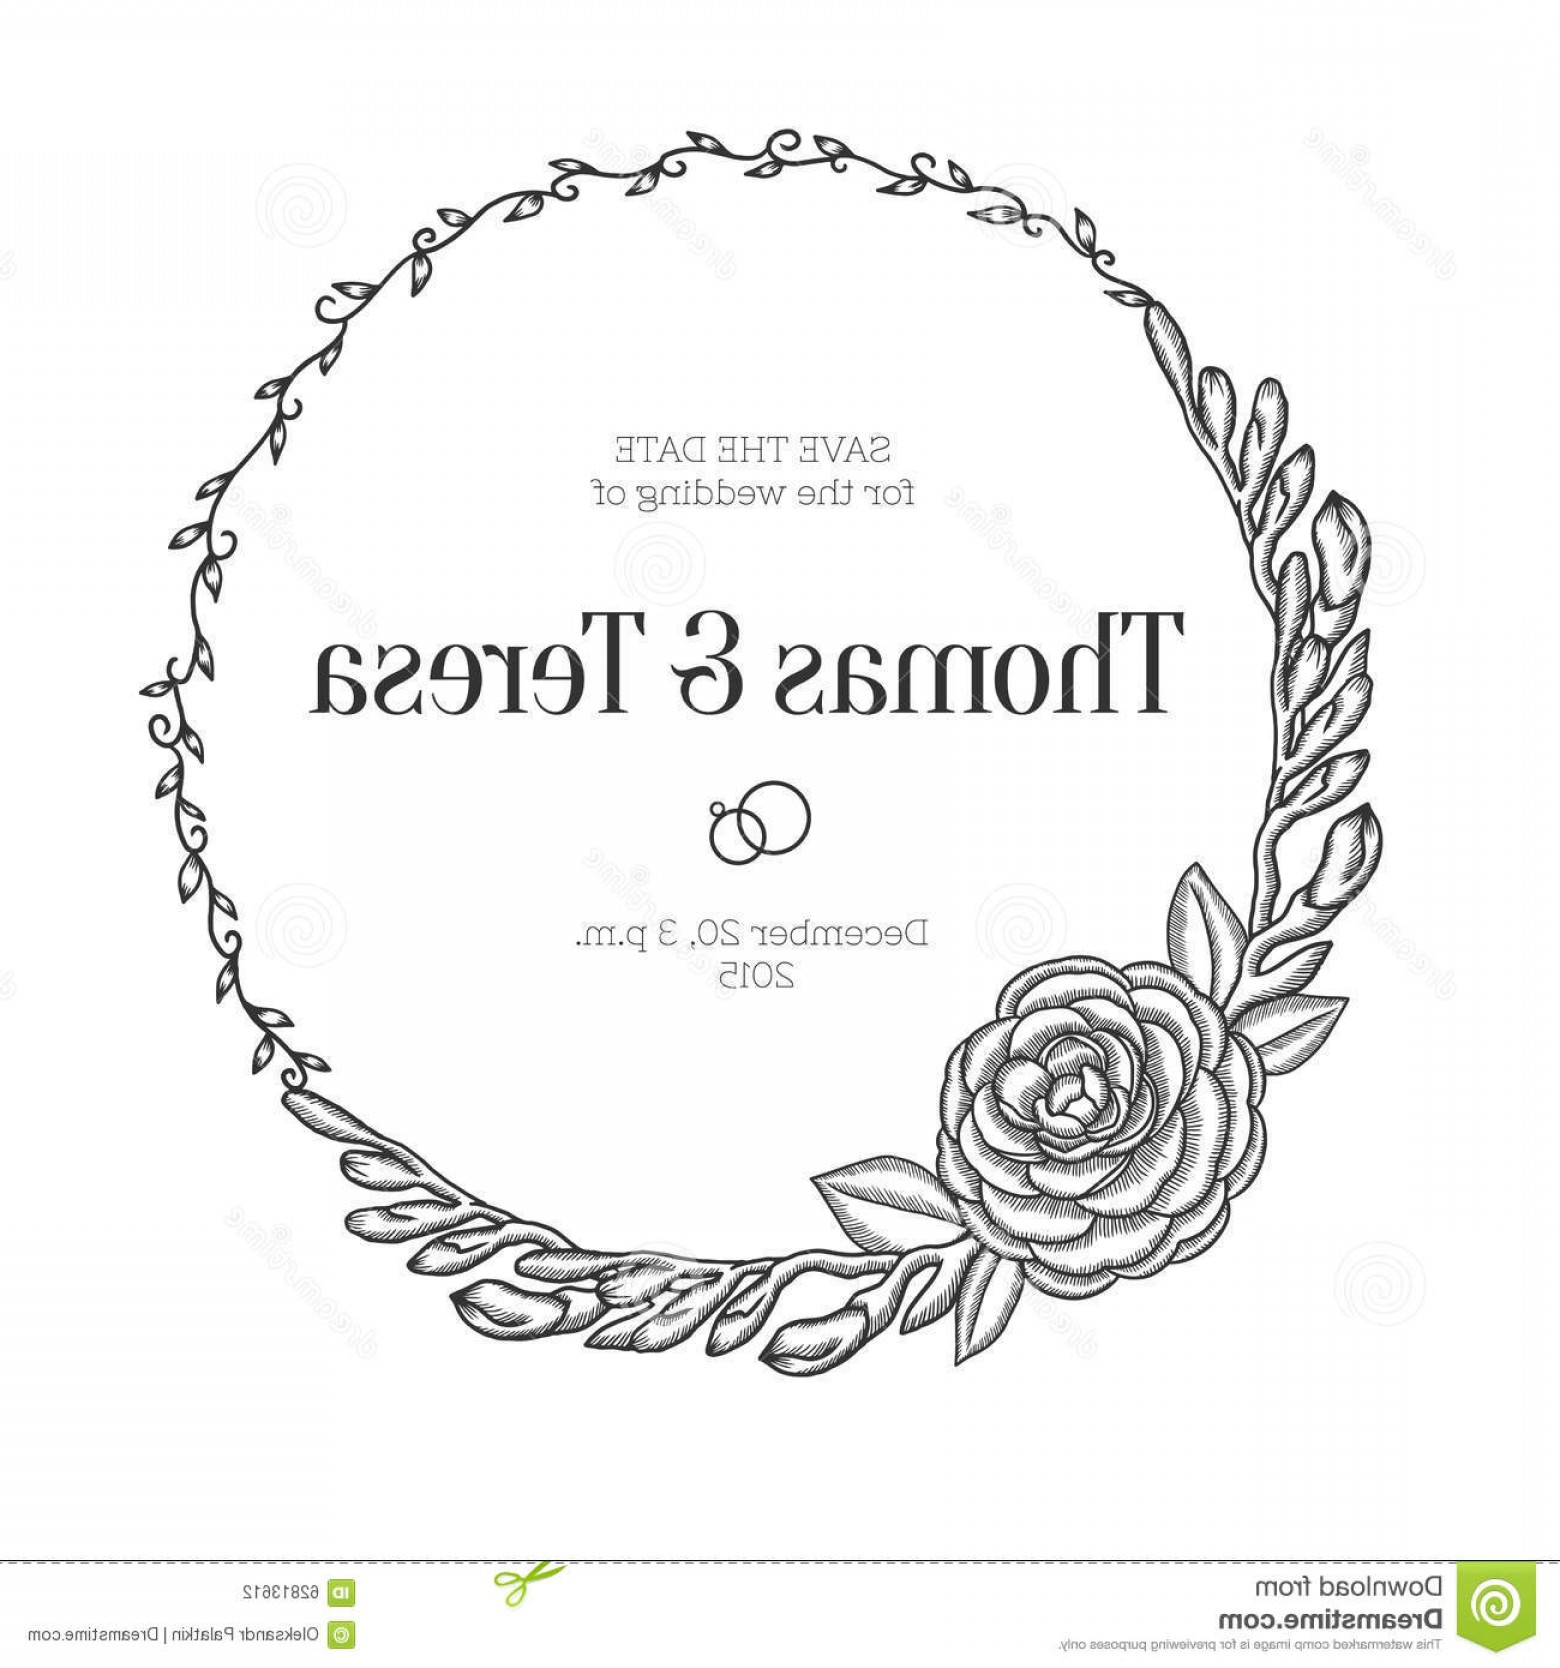 Vector Flower Wreaths In Black: Stock Illustration Vintage Floral Wreath Wedding Invitation Hand Drawn Round Vector Illustration Image